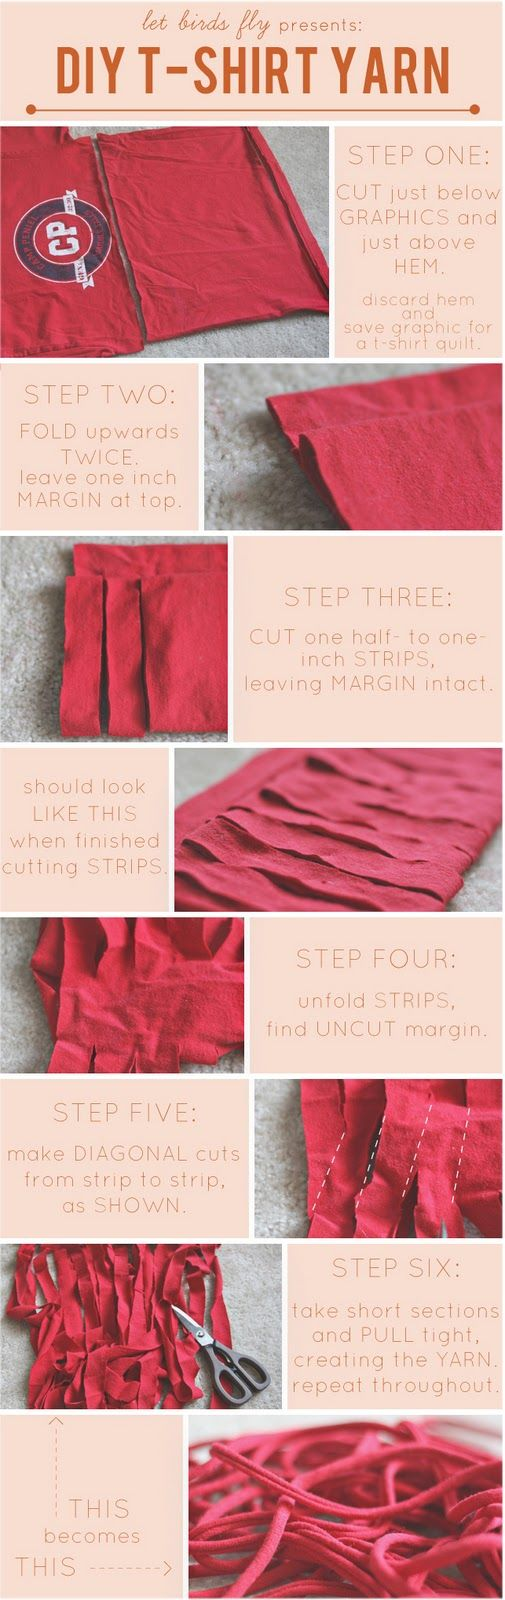 DIY T-Shirt Yarn - cleaning out my closet and I am totally doing this with t-shirts I don't like/wear anymore